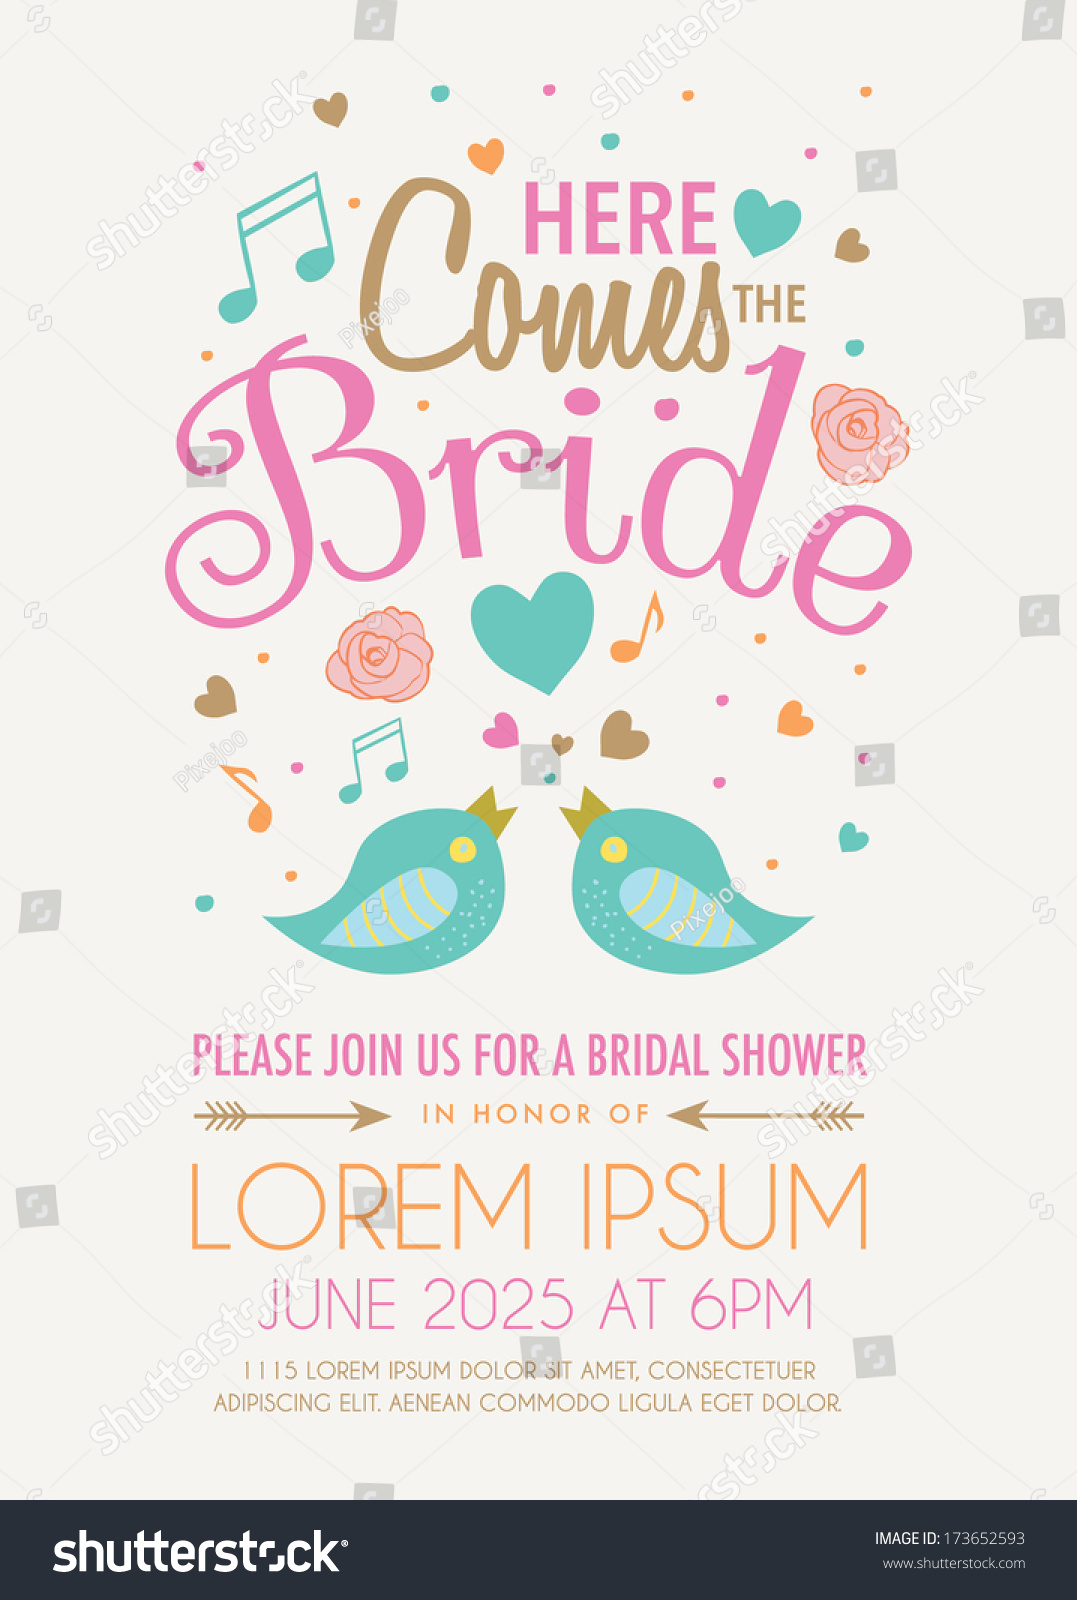 Bridal Shower Invitation Featuring Words Here Stock Vector ...